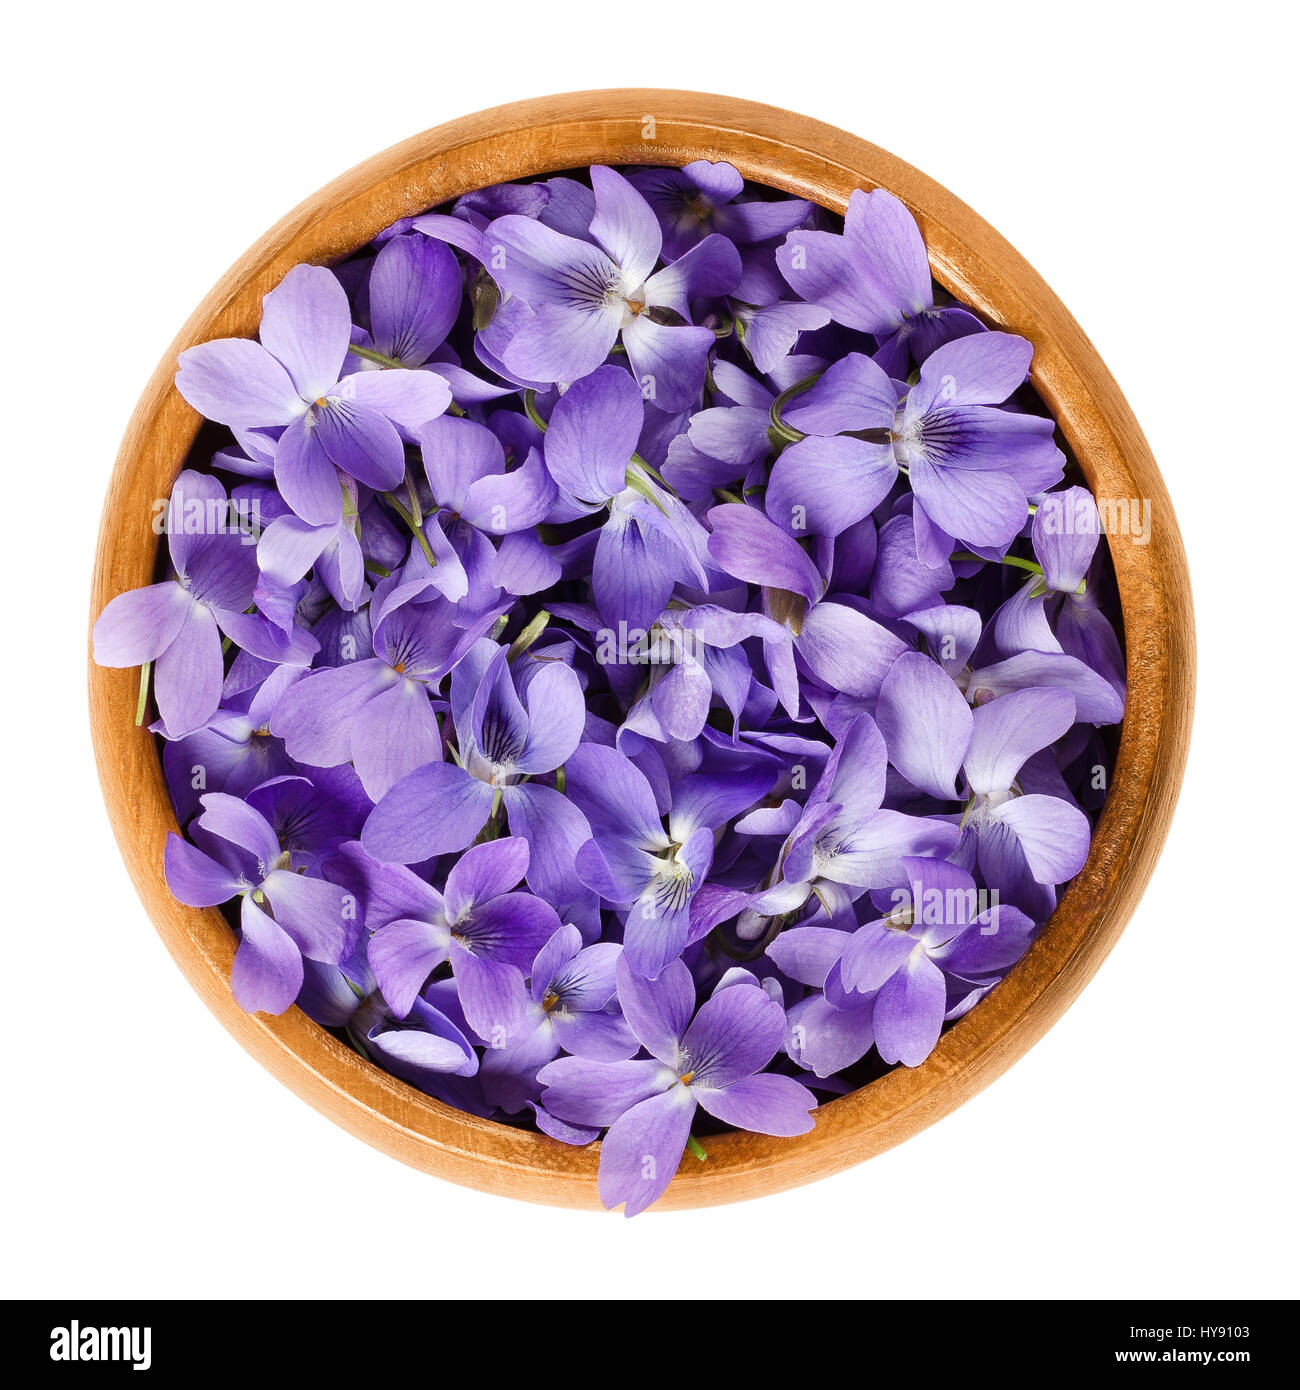 Wild violet flowers in wooden bowl. Also wood, sweet, English, common or garden violet. Viola odorata. Edible blossoms, - Stock Image